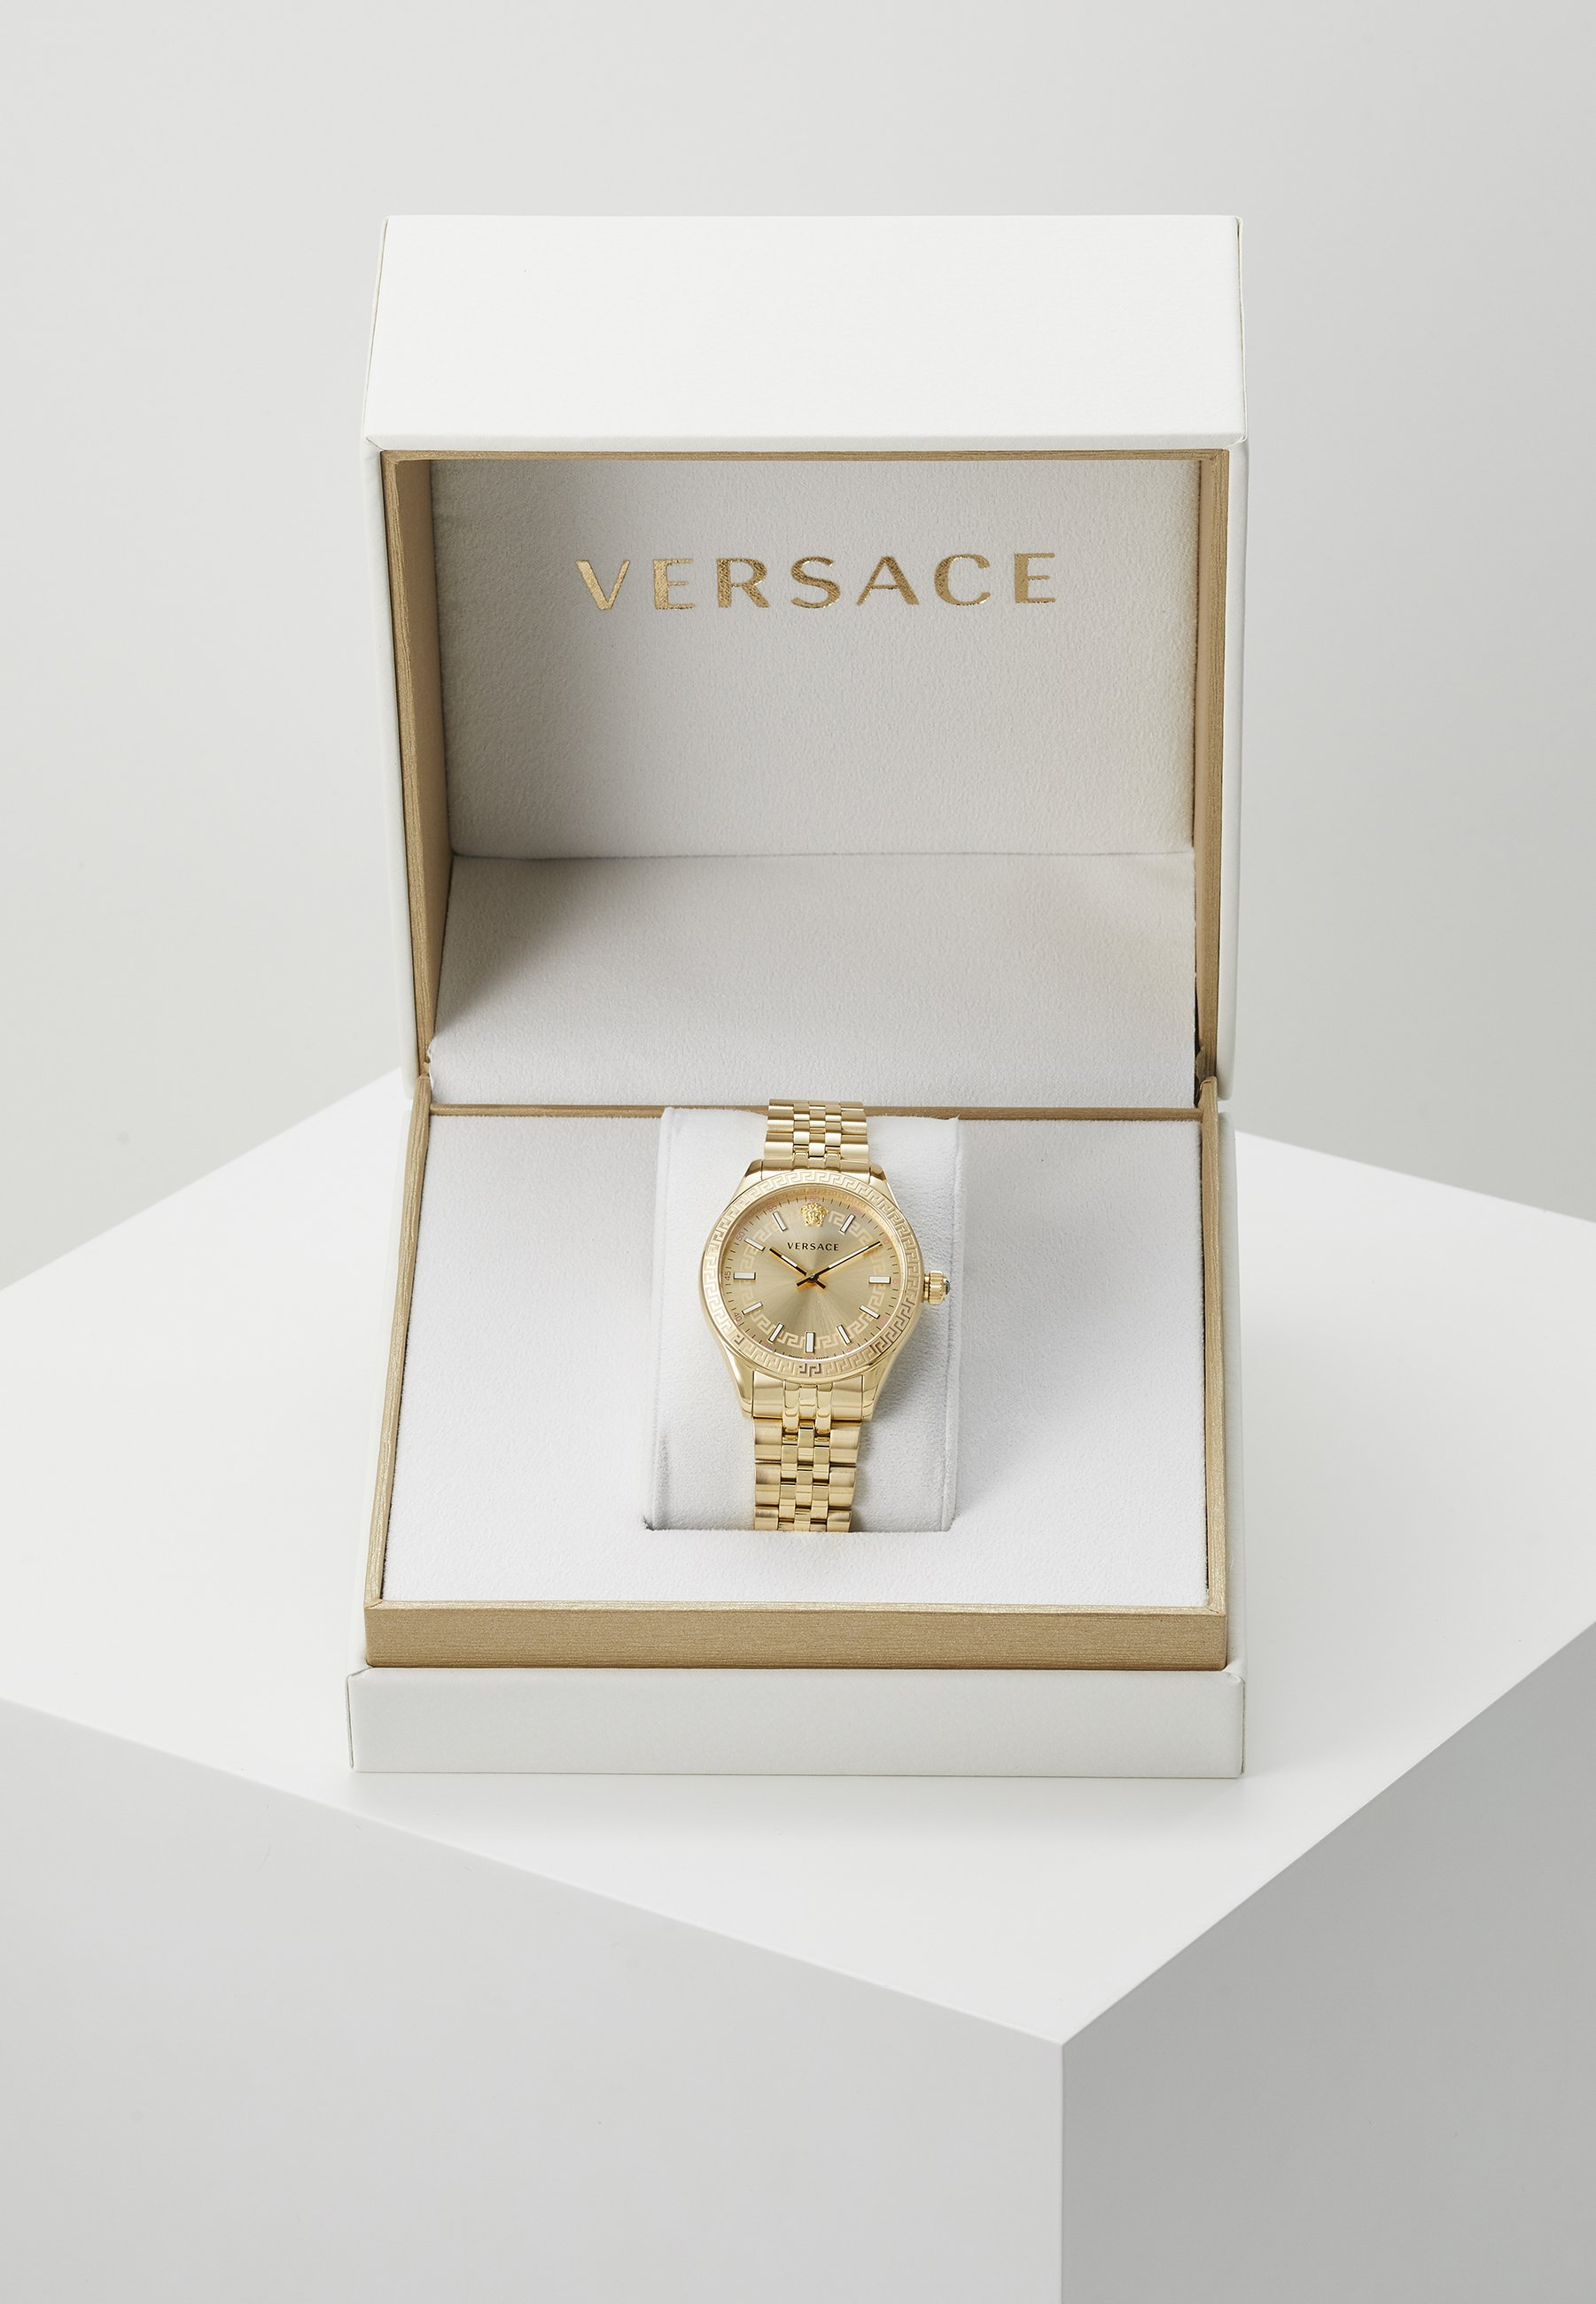 Factory Price Amazing Price Accessories Versace Watches HELLENYIUM Watch gold-coloured J74ArcXLe Wvz5jhH9x